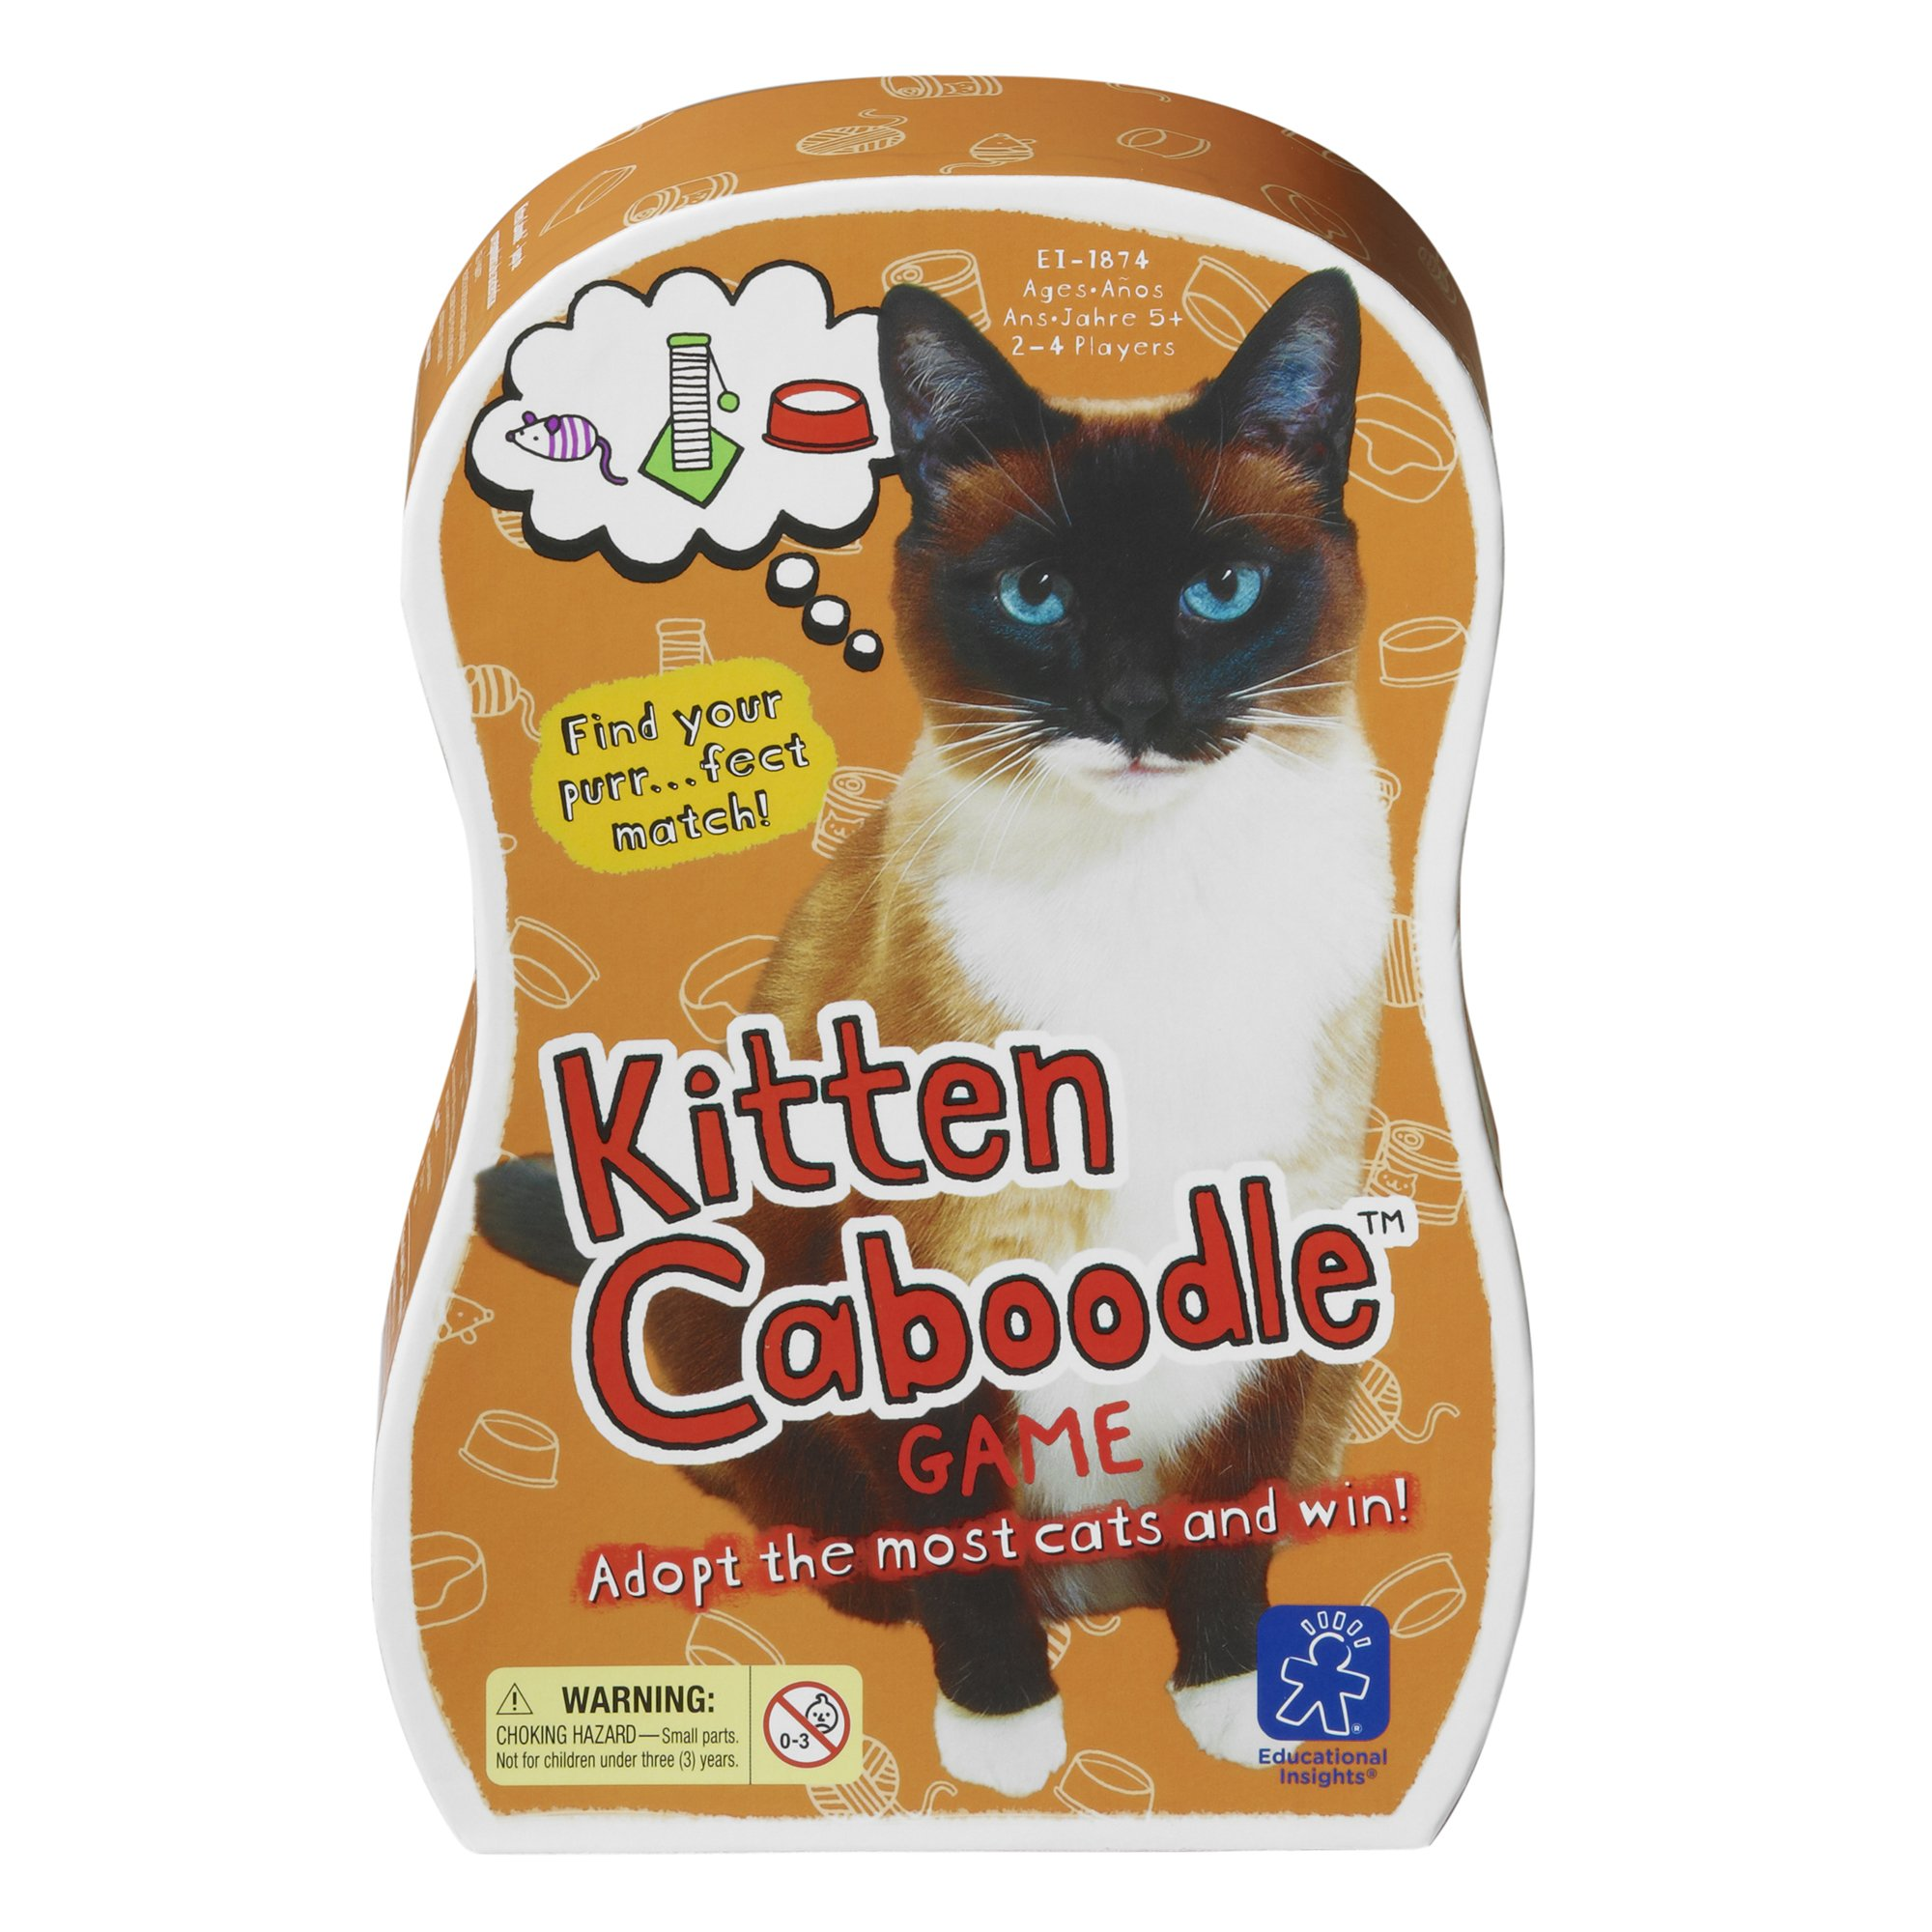 Educational Insights Kitten Caboodle Game